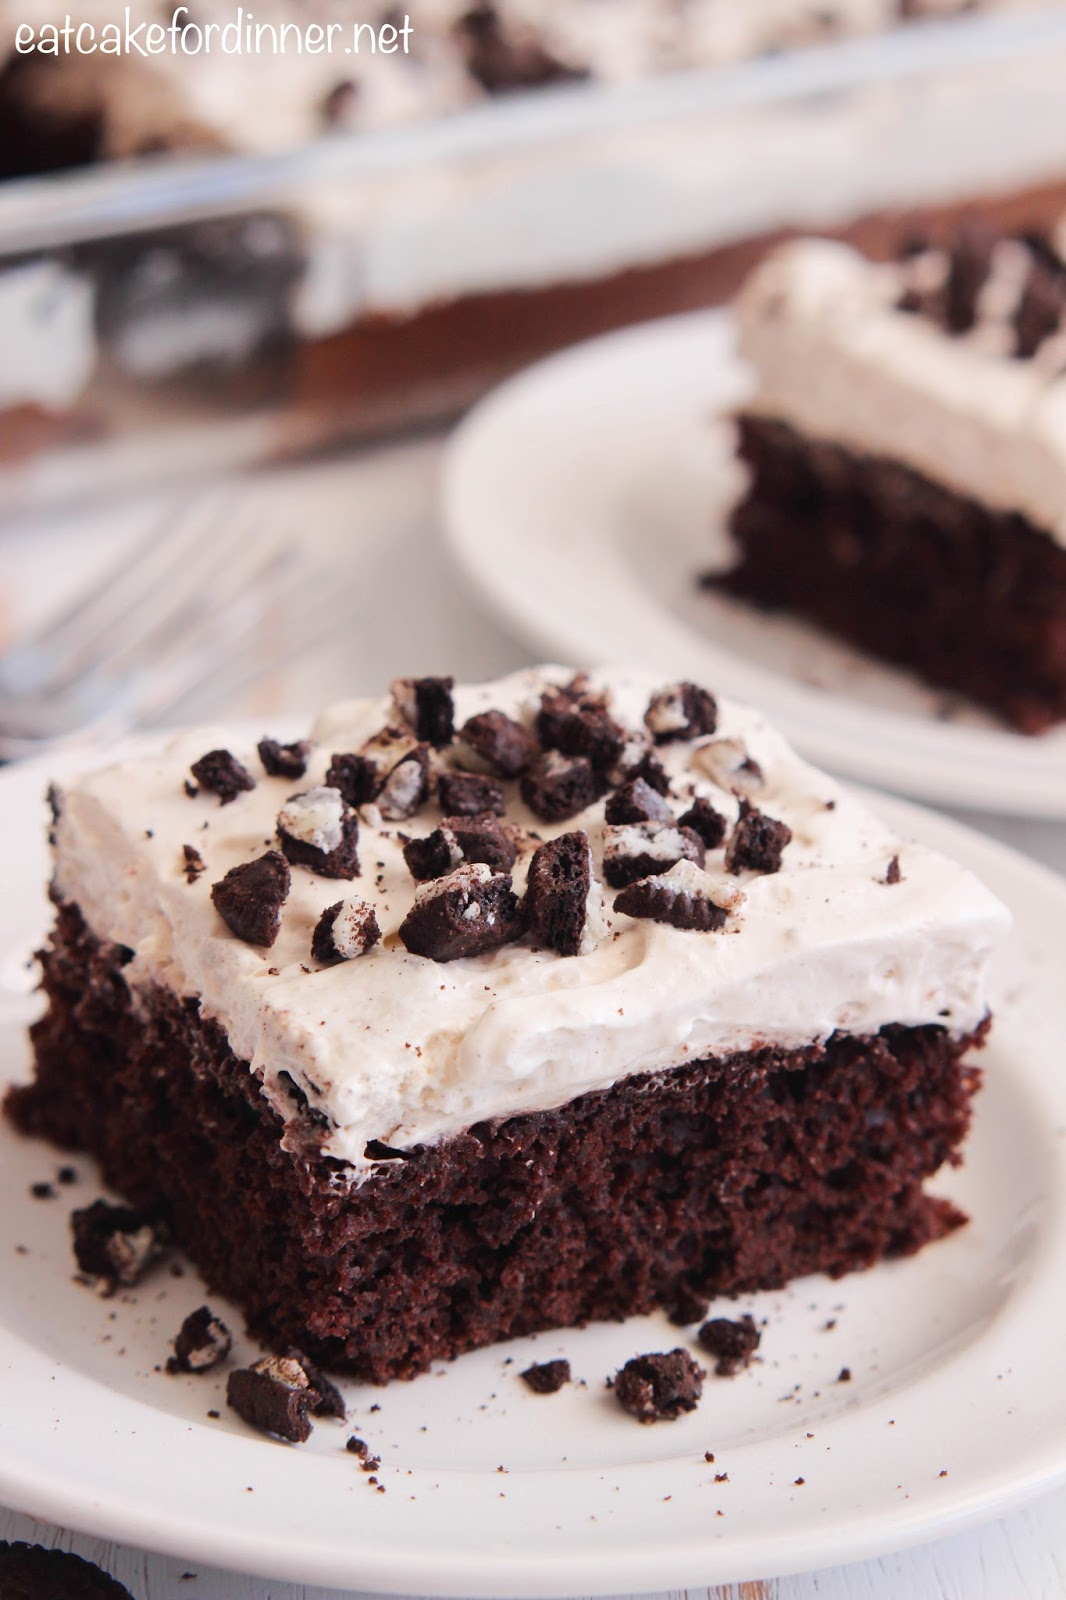 Skinny Cookies 'n Cream Chocolate Cake